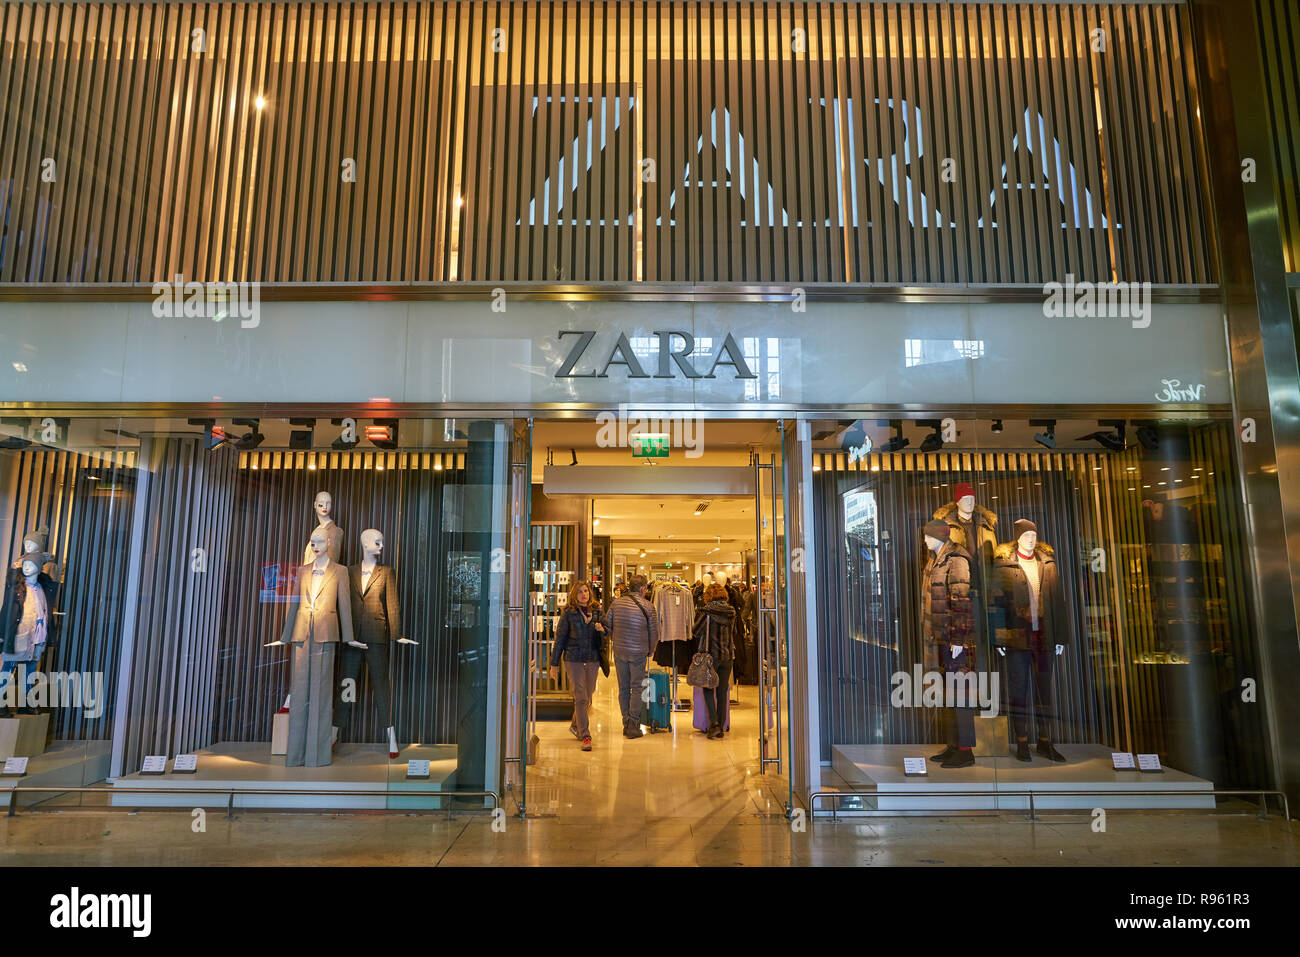 22c72915 MILAN, ITALY - CIRCA NOVEMBER, 2017: entrance to Zara shop in Milan.